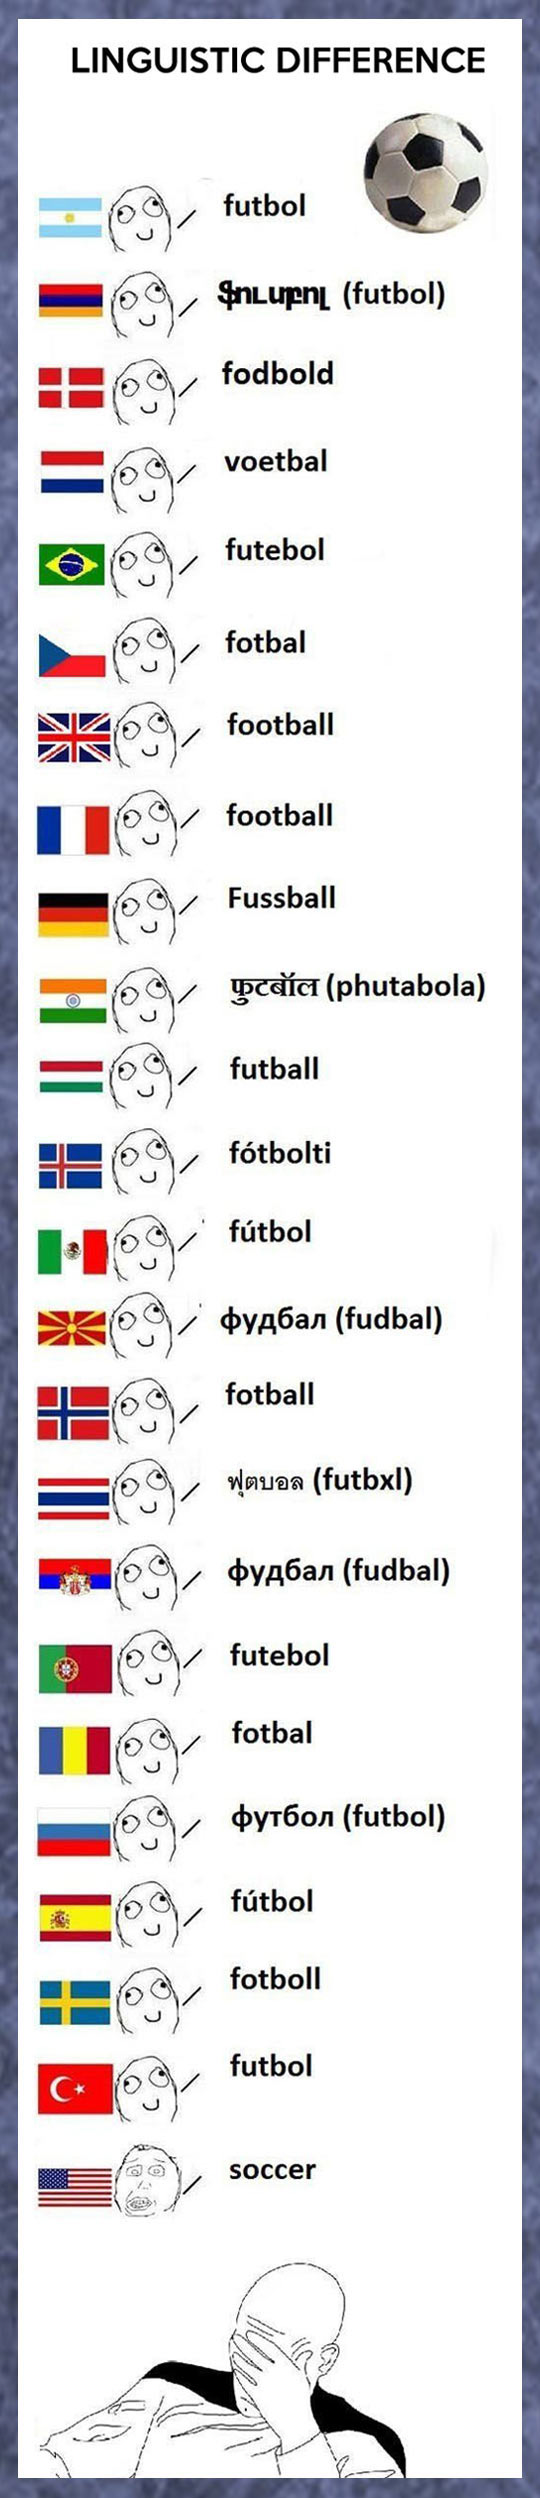 cool-soccer-countries-differences